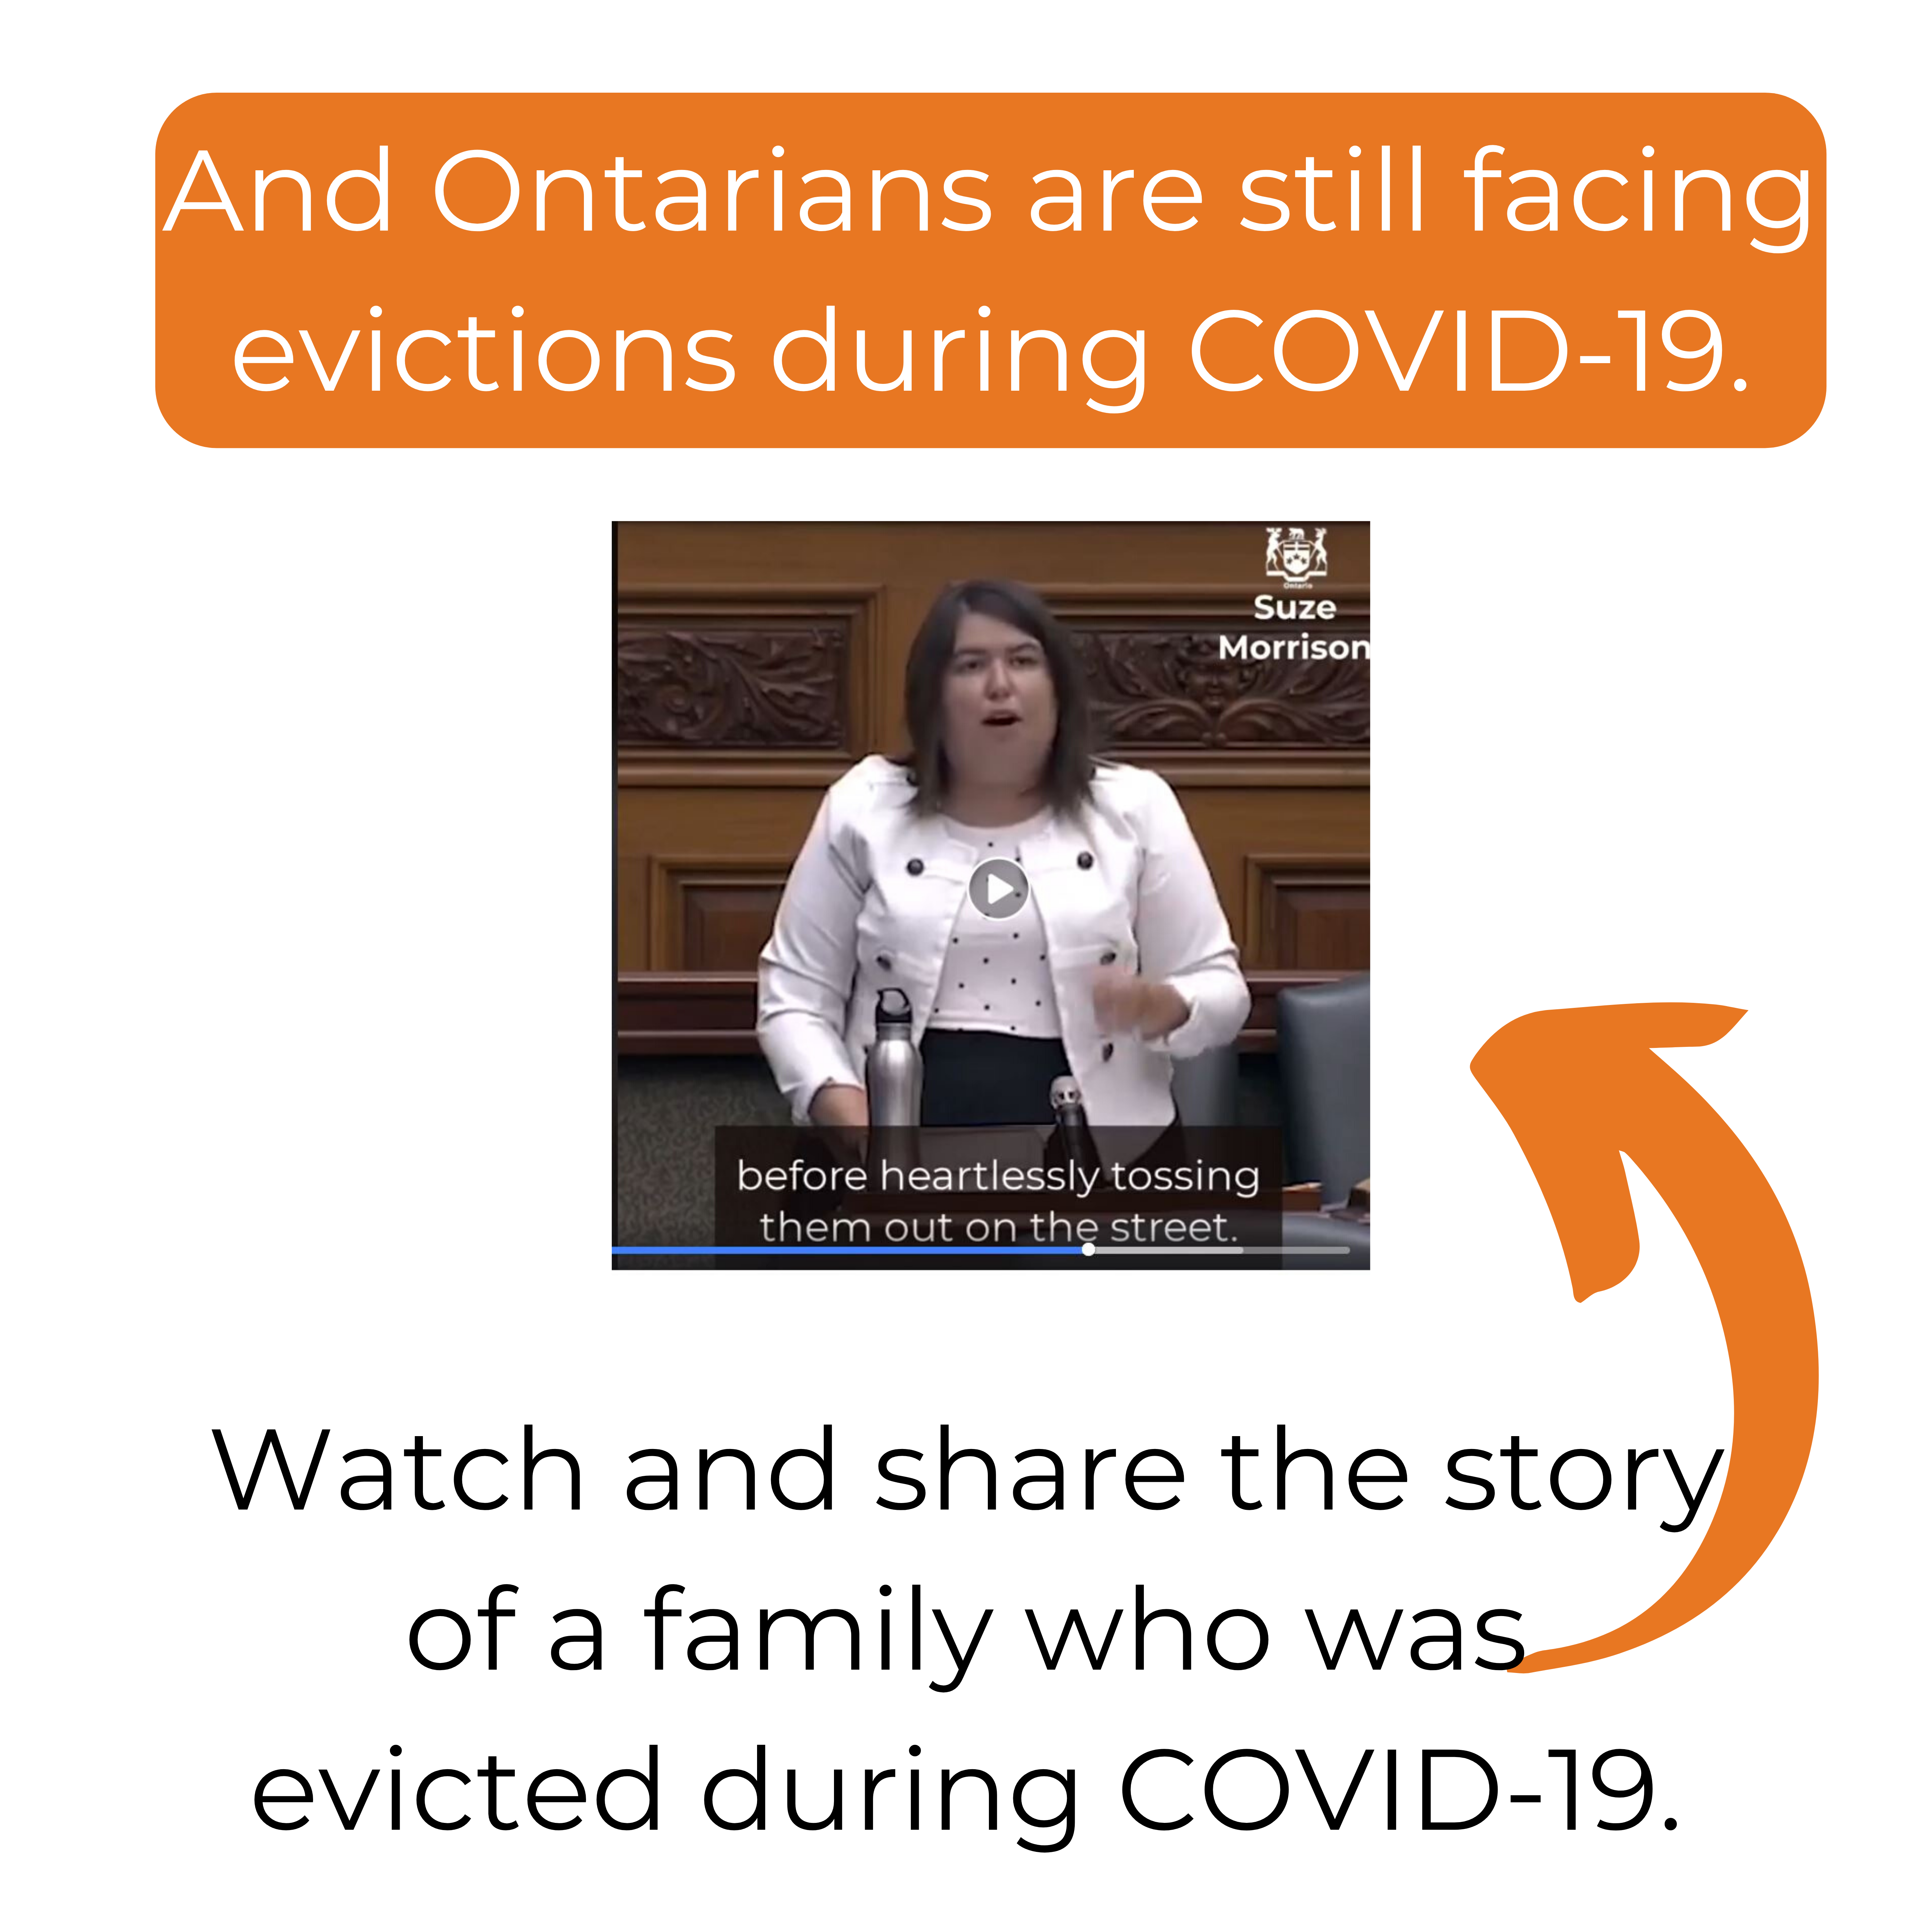 And Ontarians are still facing evictions during COVID-19.Watch and share the story of a family who was evicted during COVID-19.